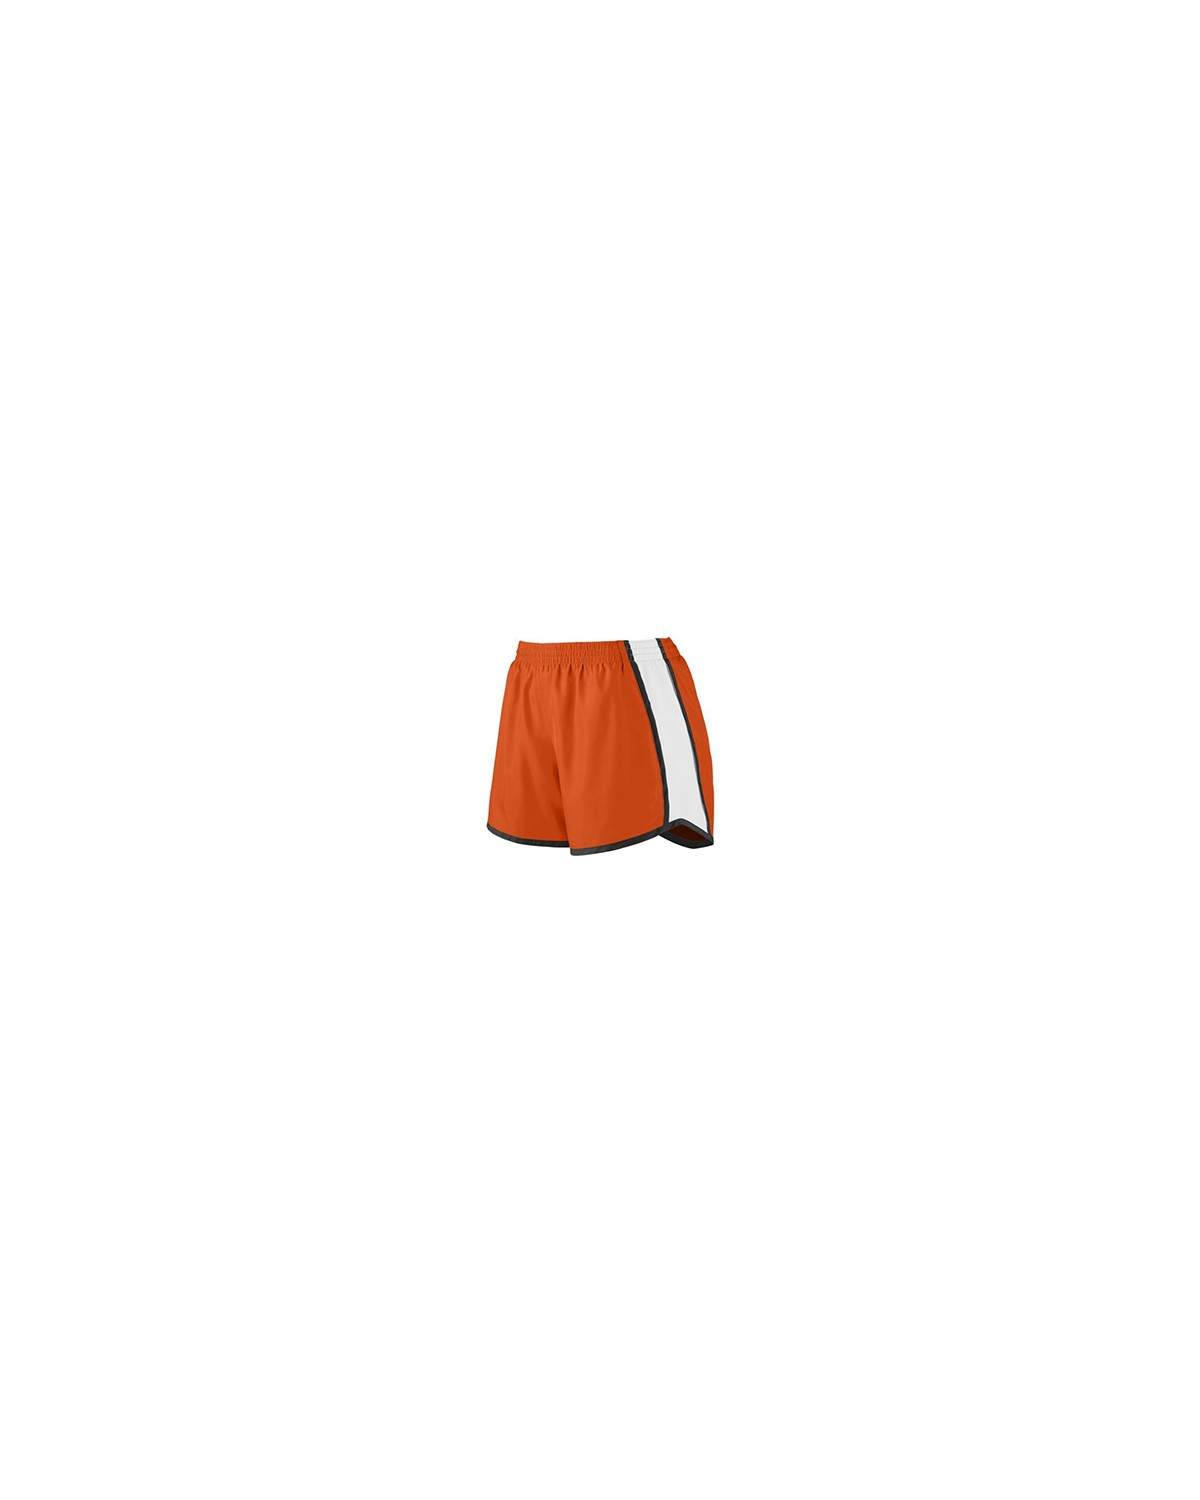 1265 Augusta Sportswear ORANGE/ WHT/ BLK